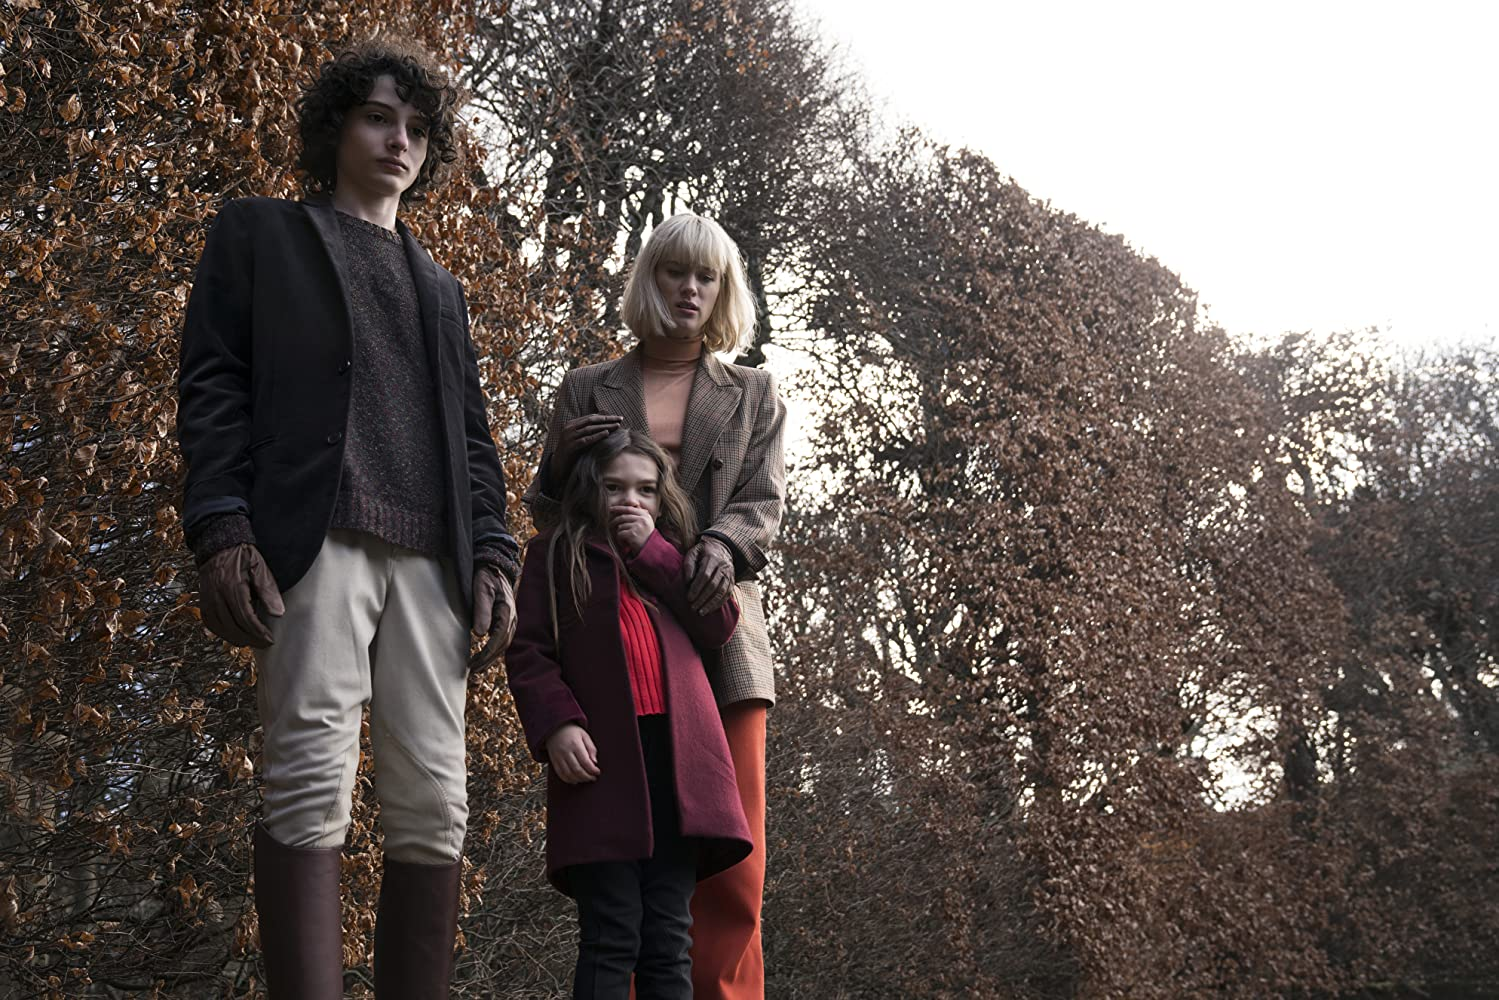 Mackenzie Davis, Finn Wolfhard, and Brooklynn Prince in The Turning (2020)